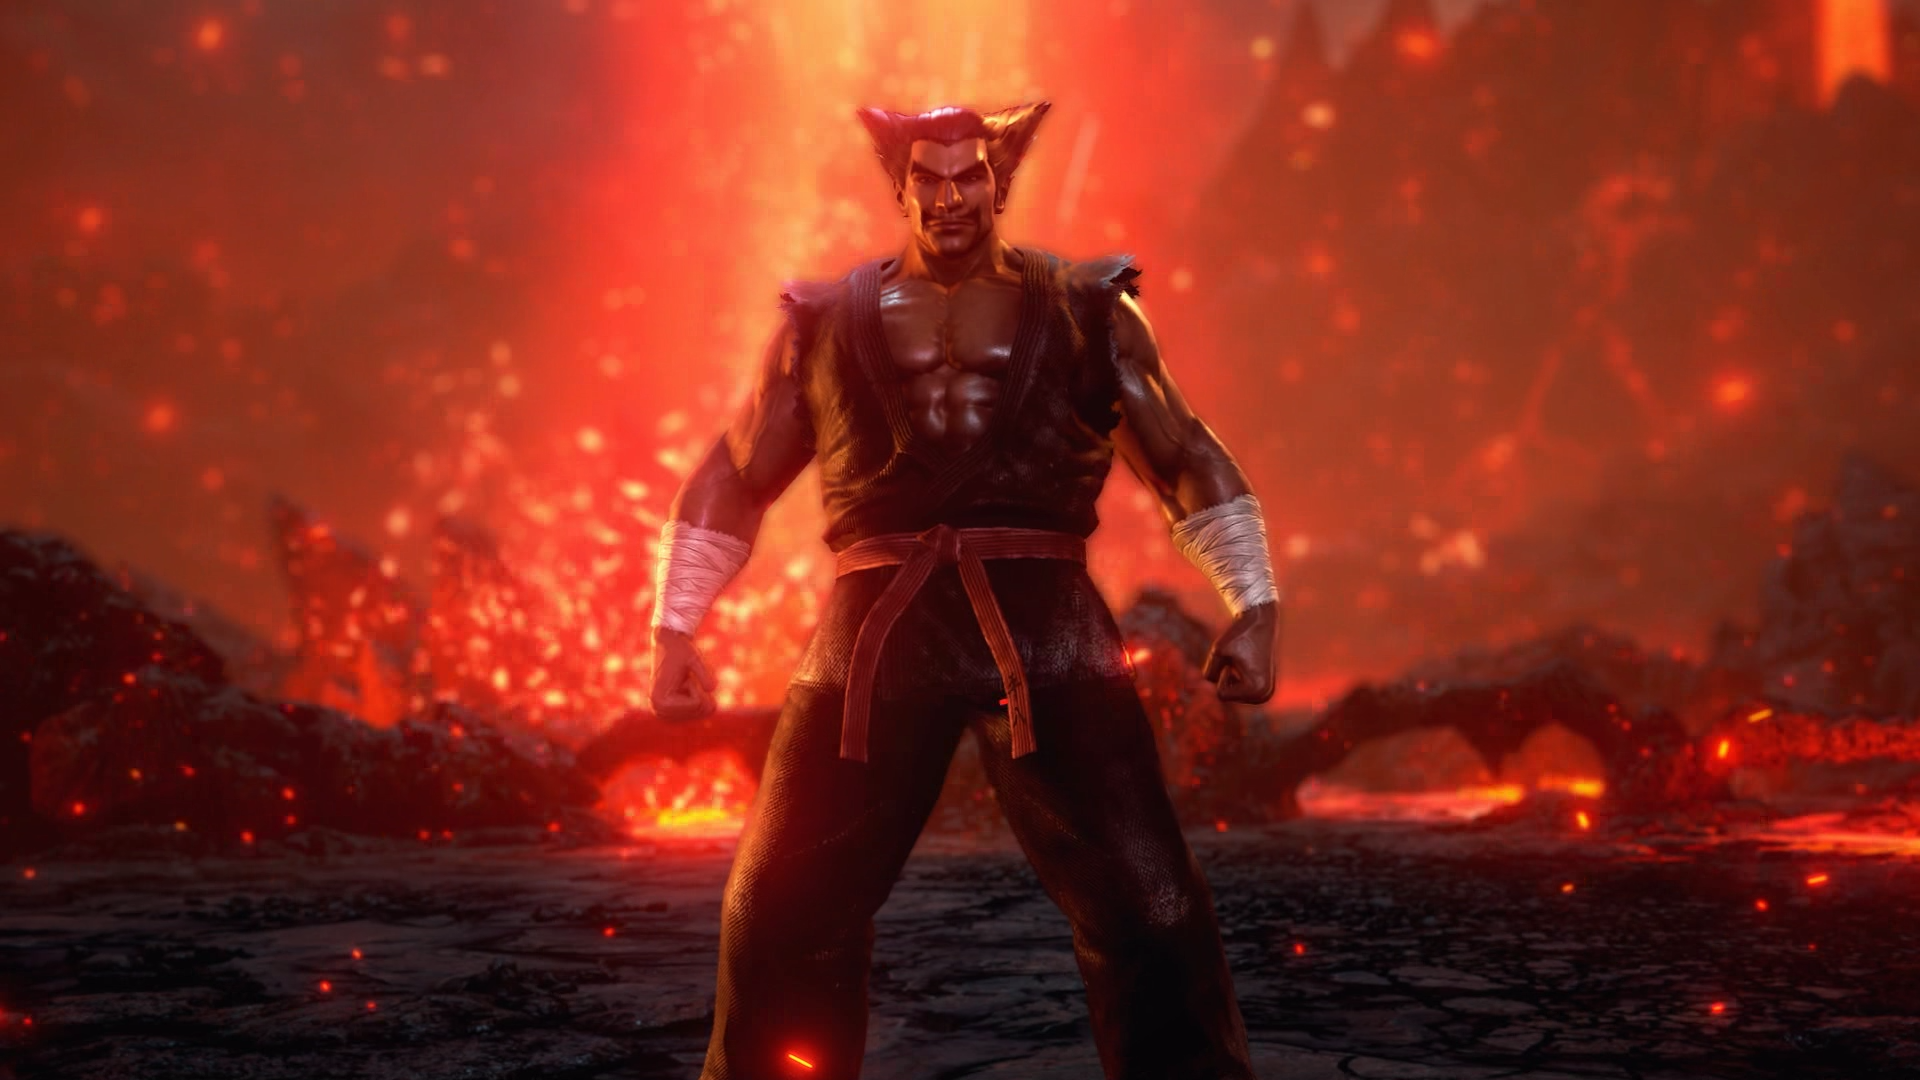 Tekken 7 Heihachi Mishima By Rikwolk On Deviantart